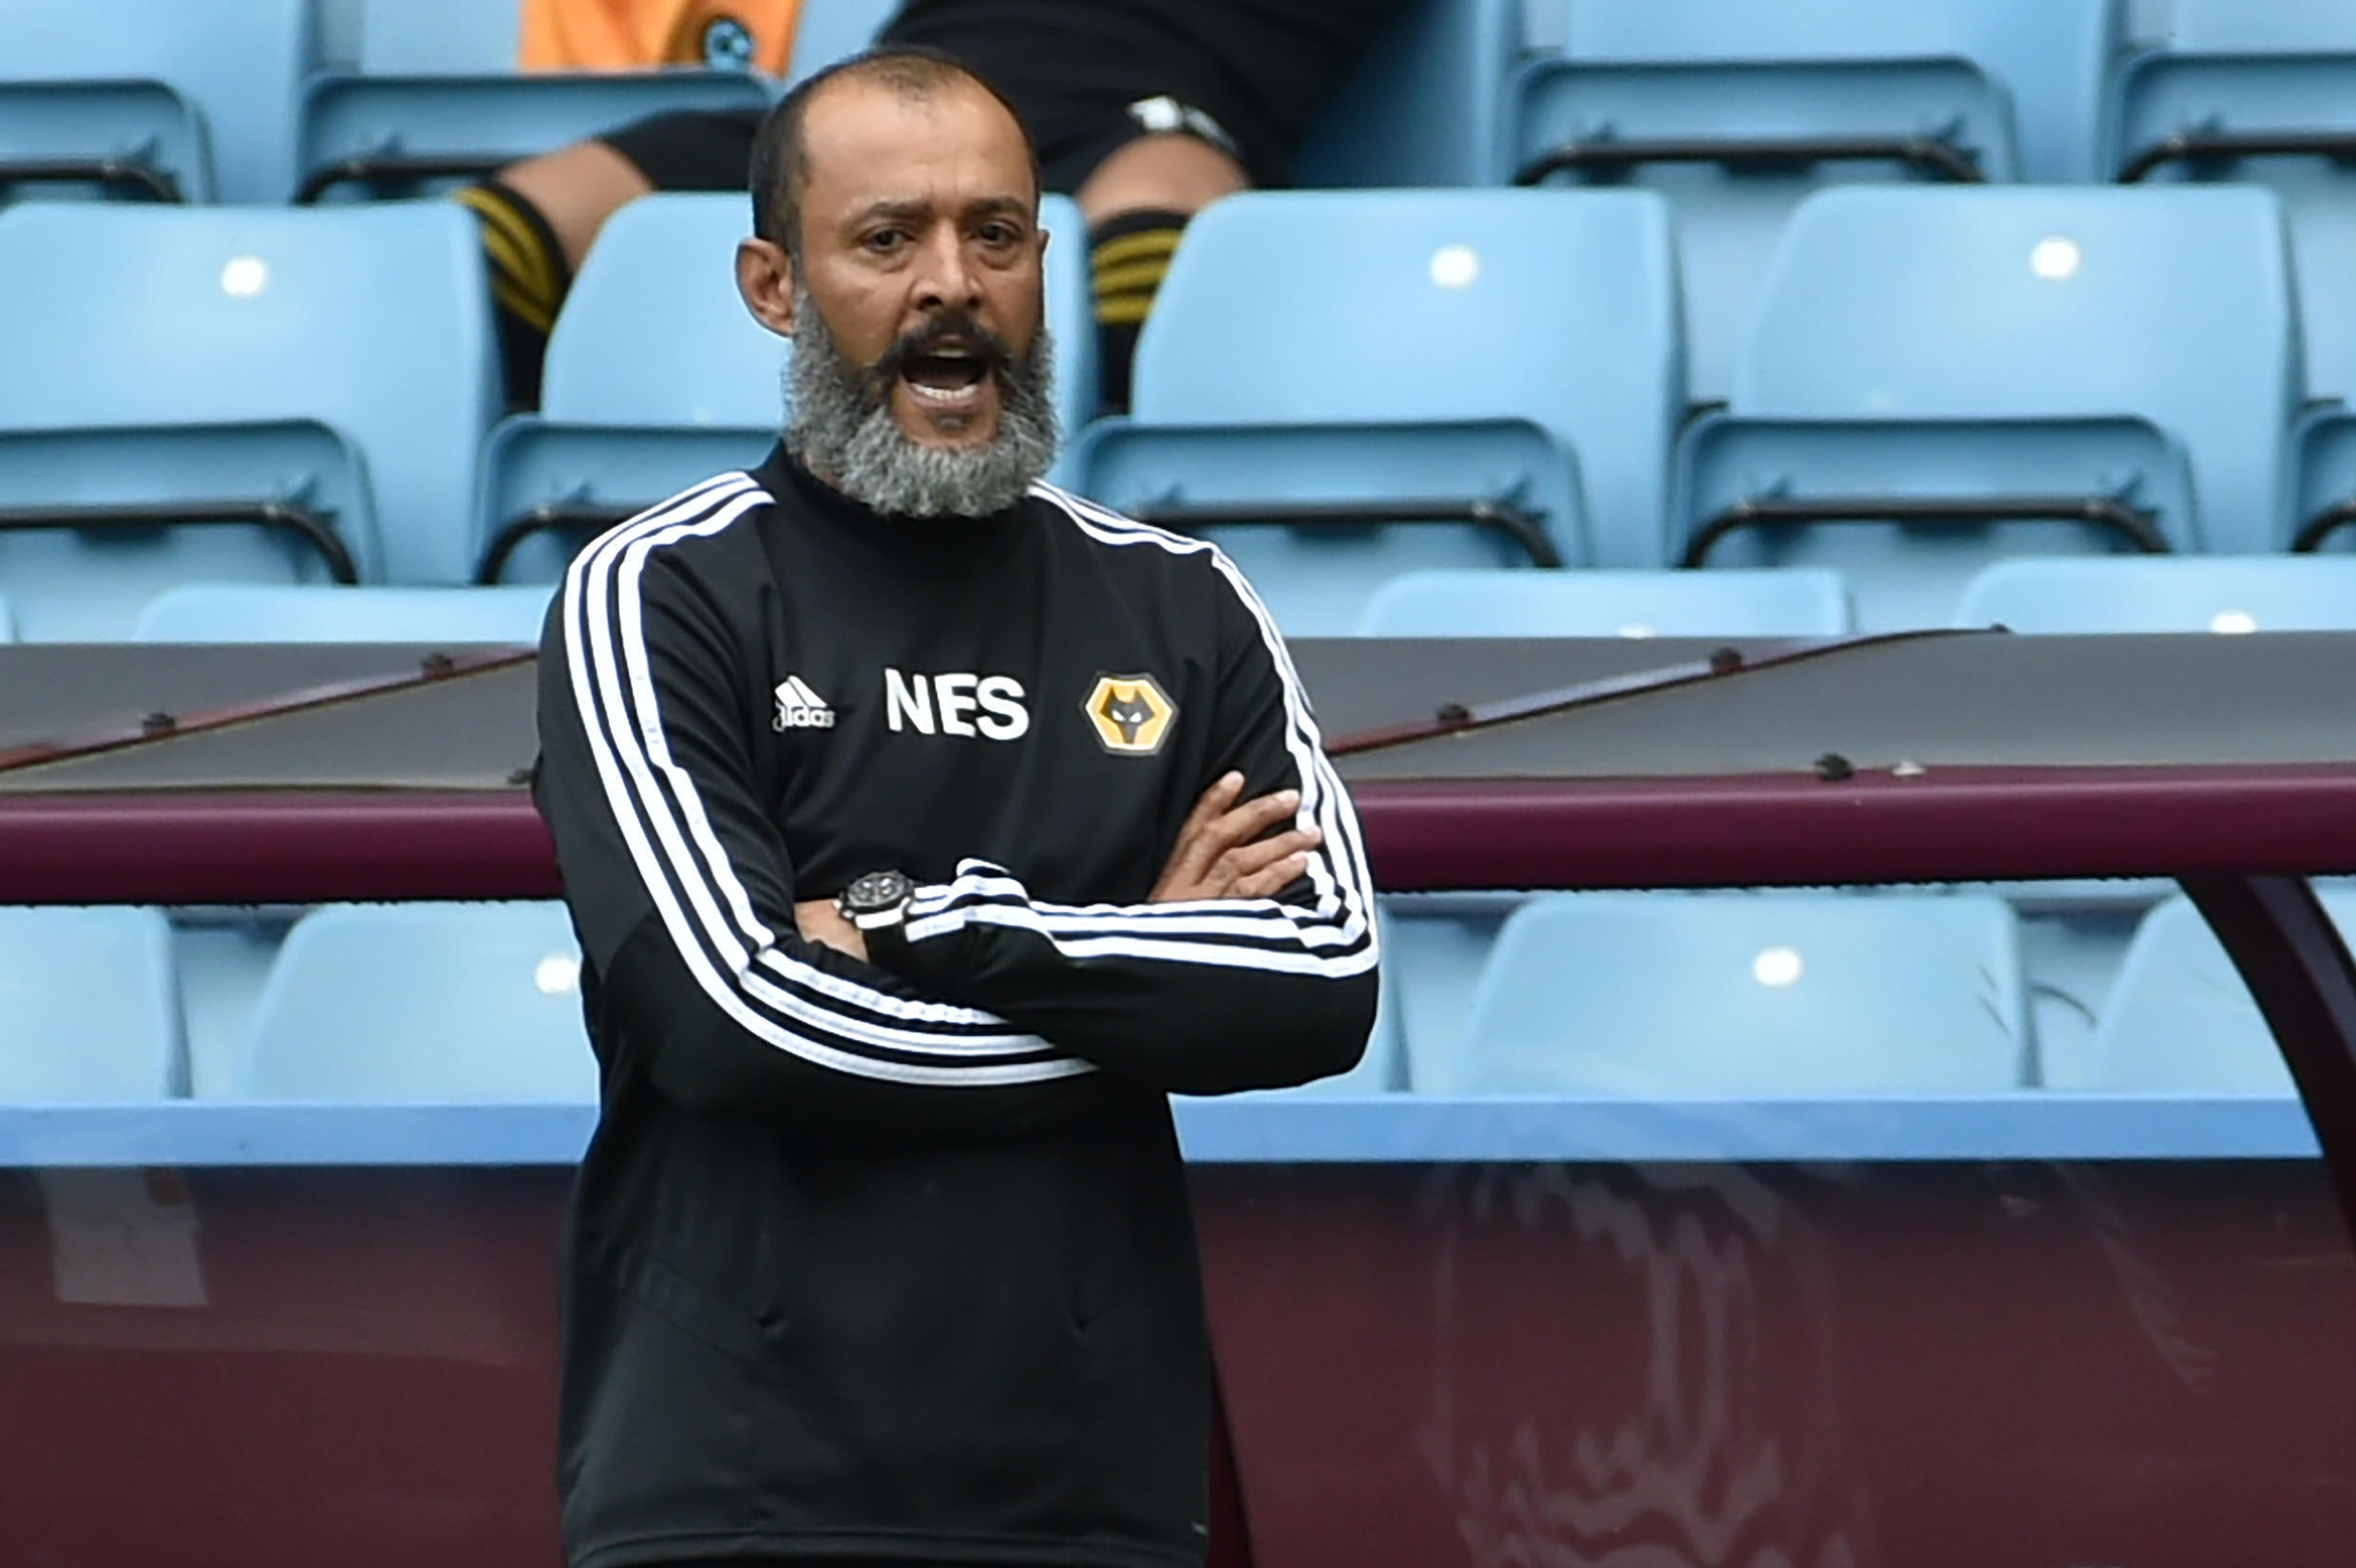 Wolverhampton Wanderers boss Nuno Espirito Santo has led the club to the latter stages of a European competition for the first time in nearly 50 years.